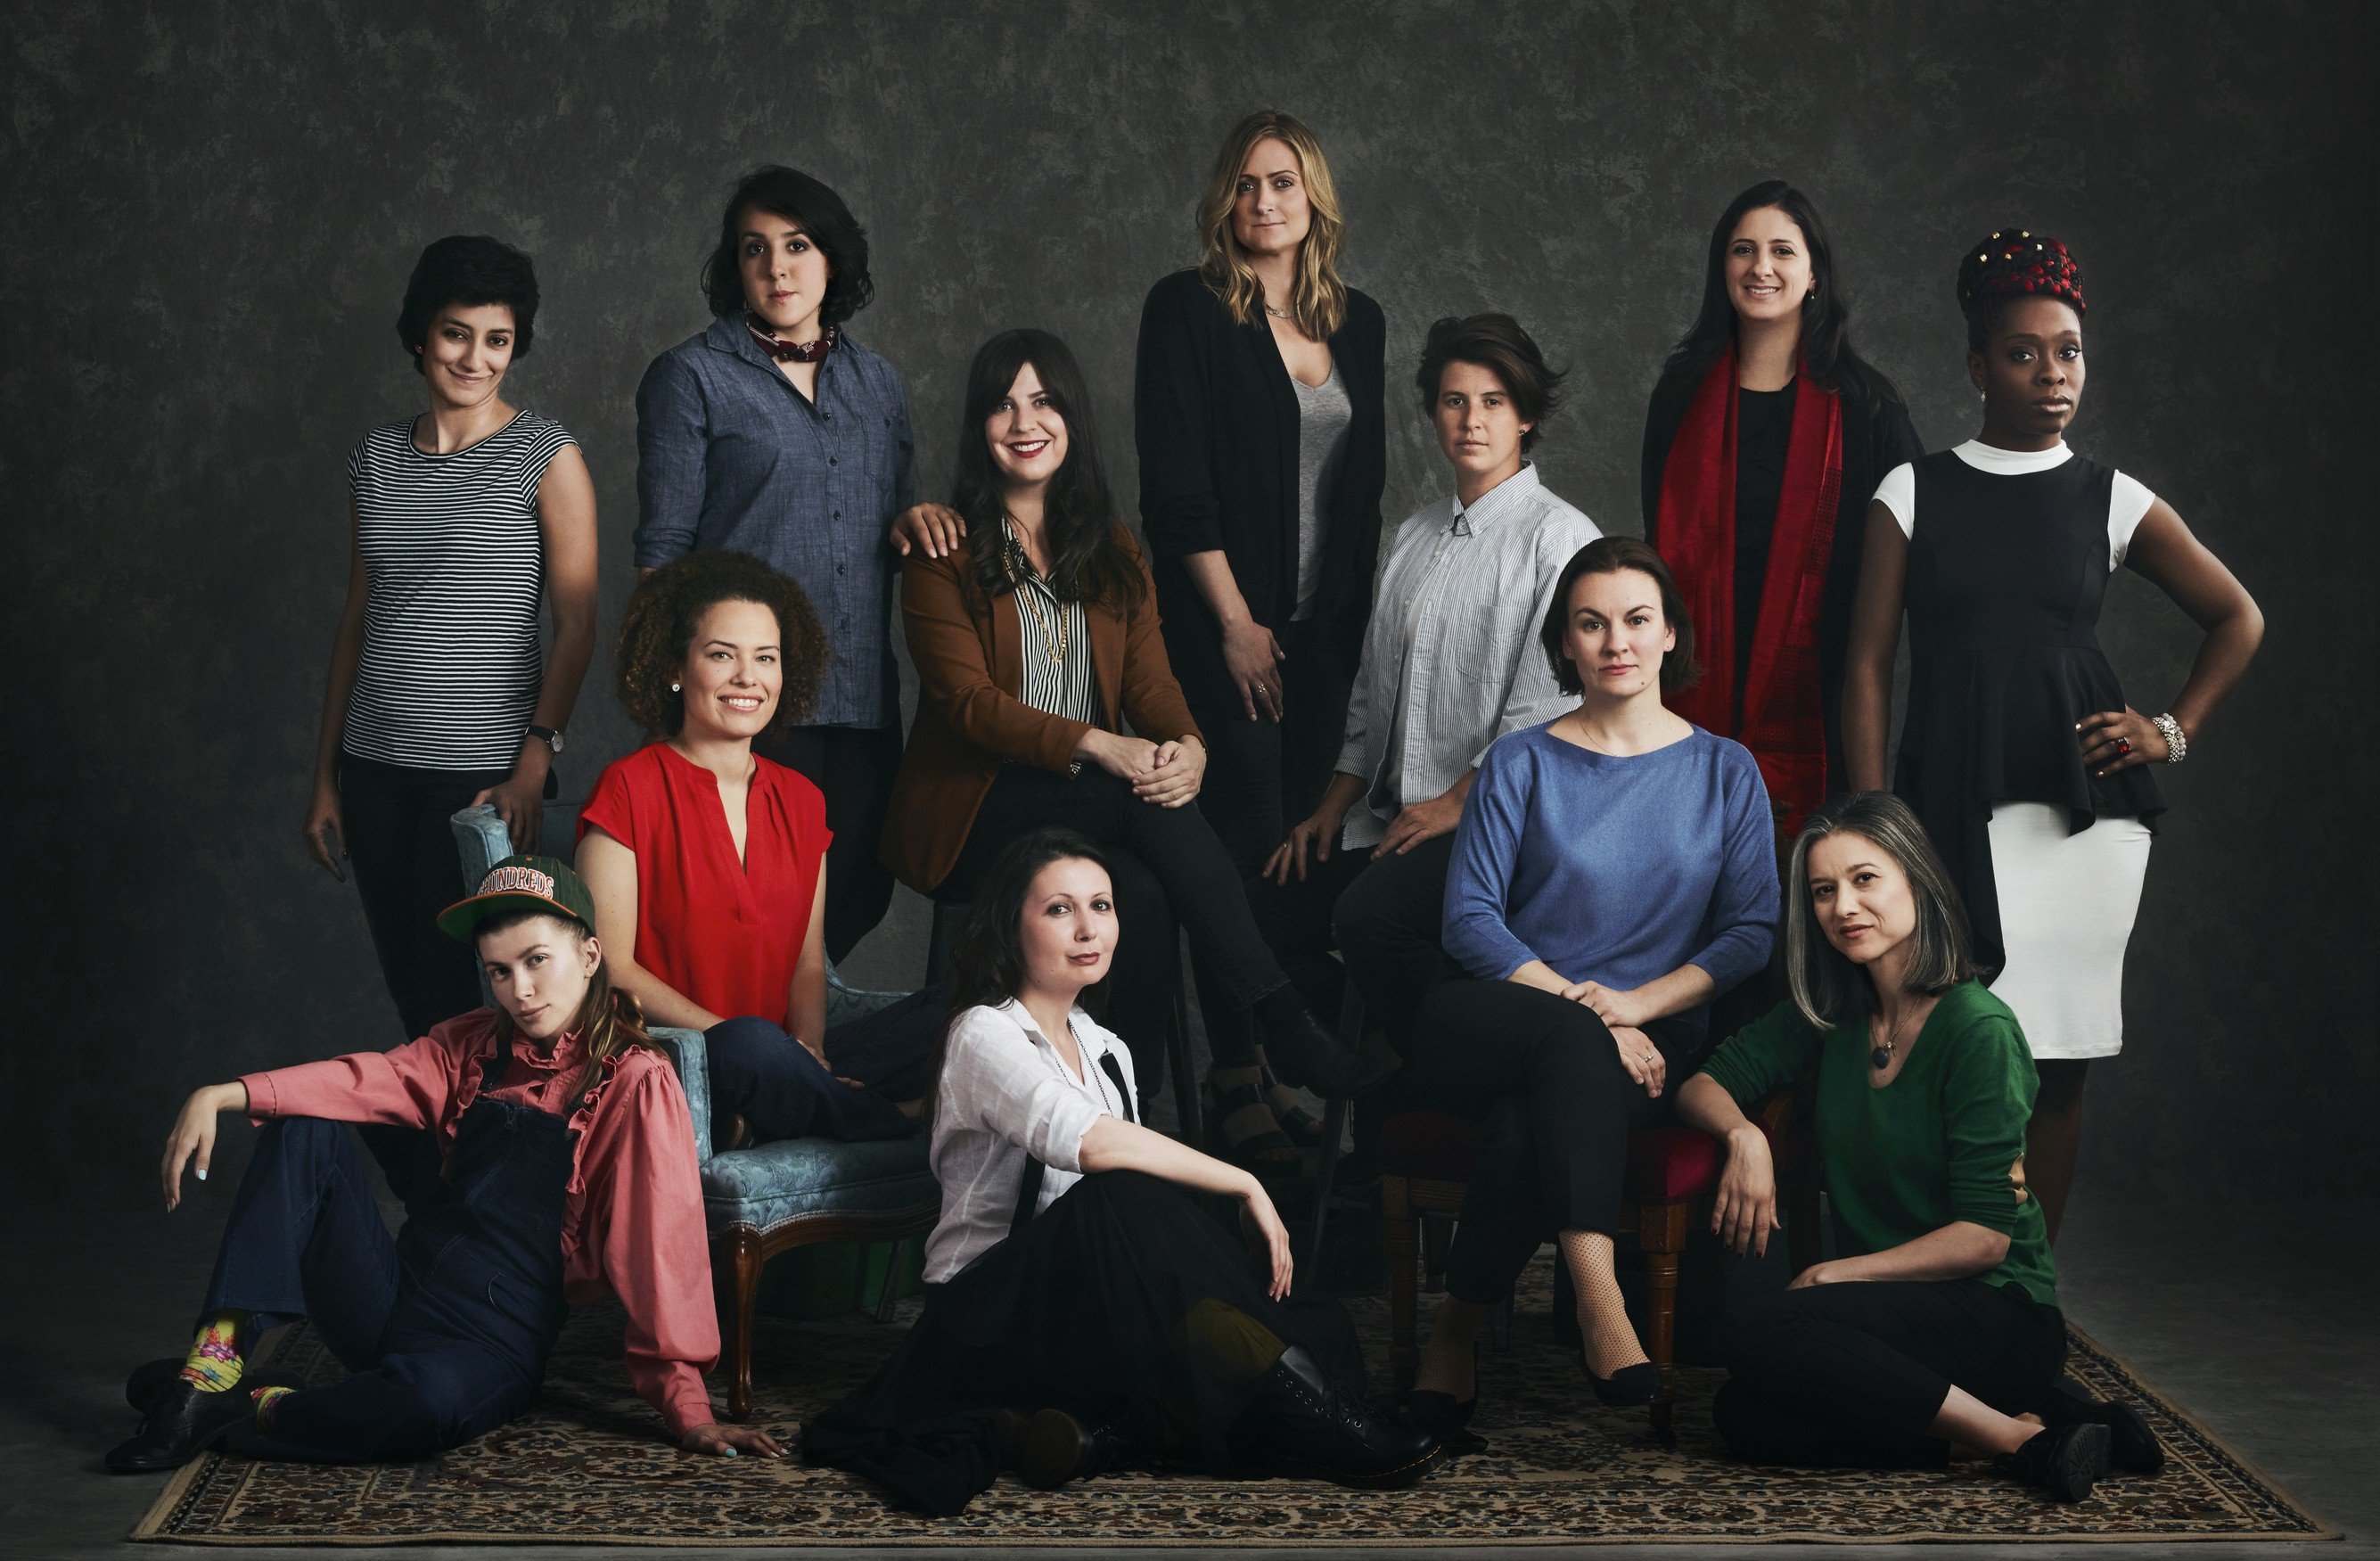 Meet 12 Women Breaking New Ground in the Arts - TED Fellows